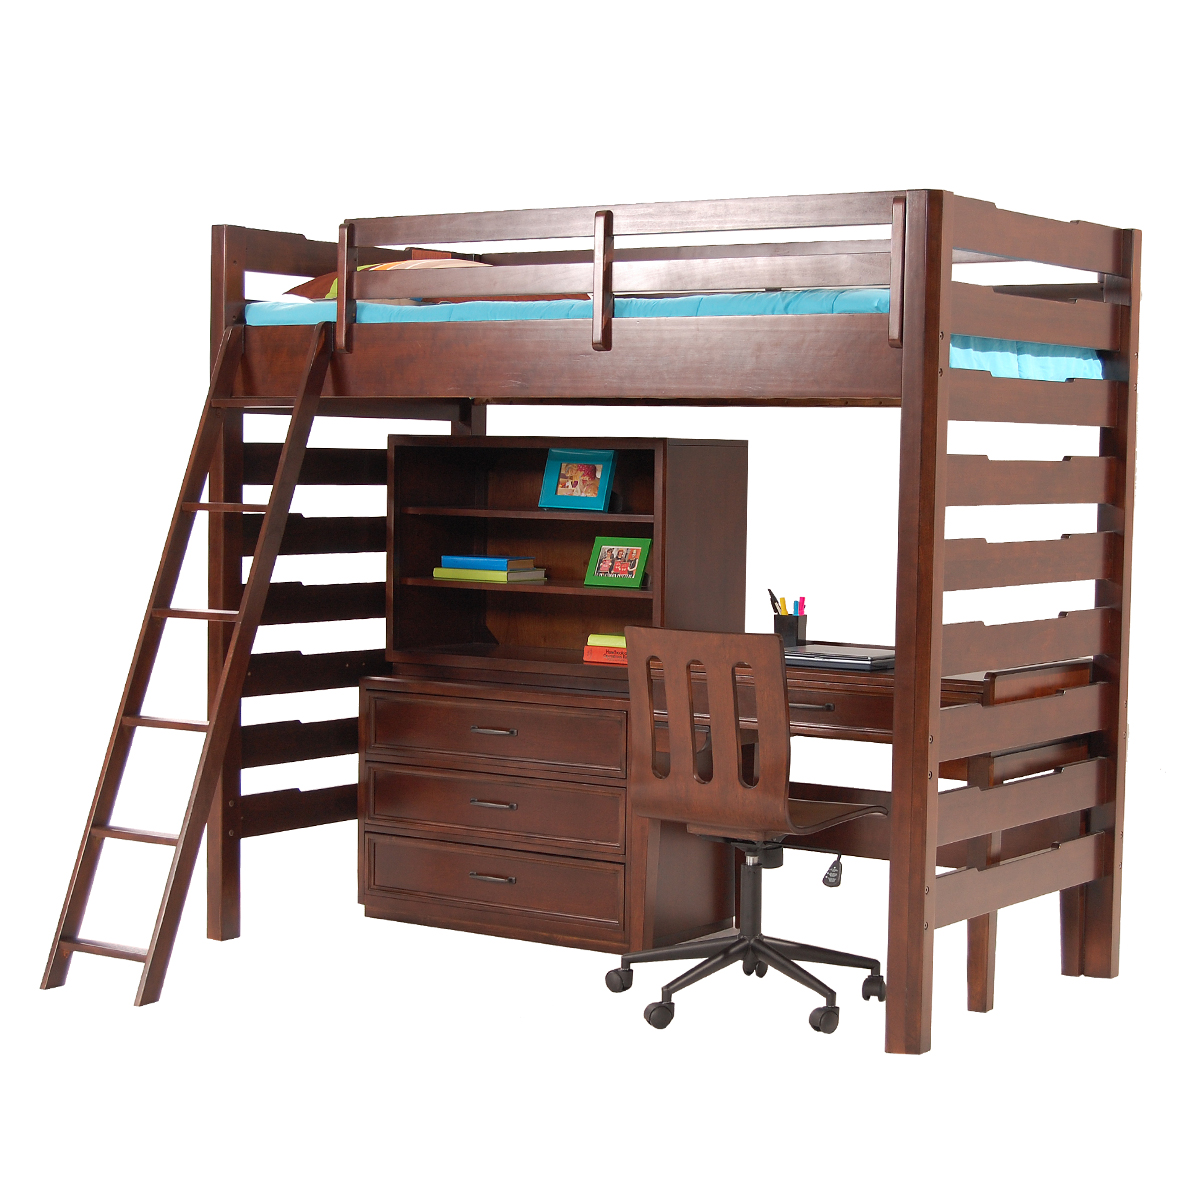 3 Twin Beds In The Space Of 1 El Dorado Furniture Making More Out Of Less Maximizing